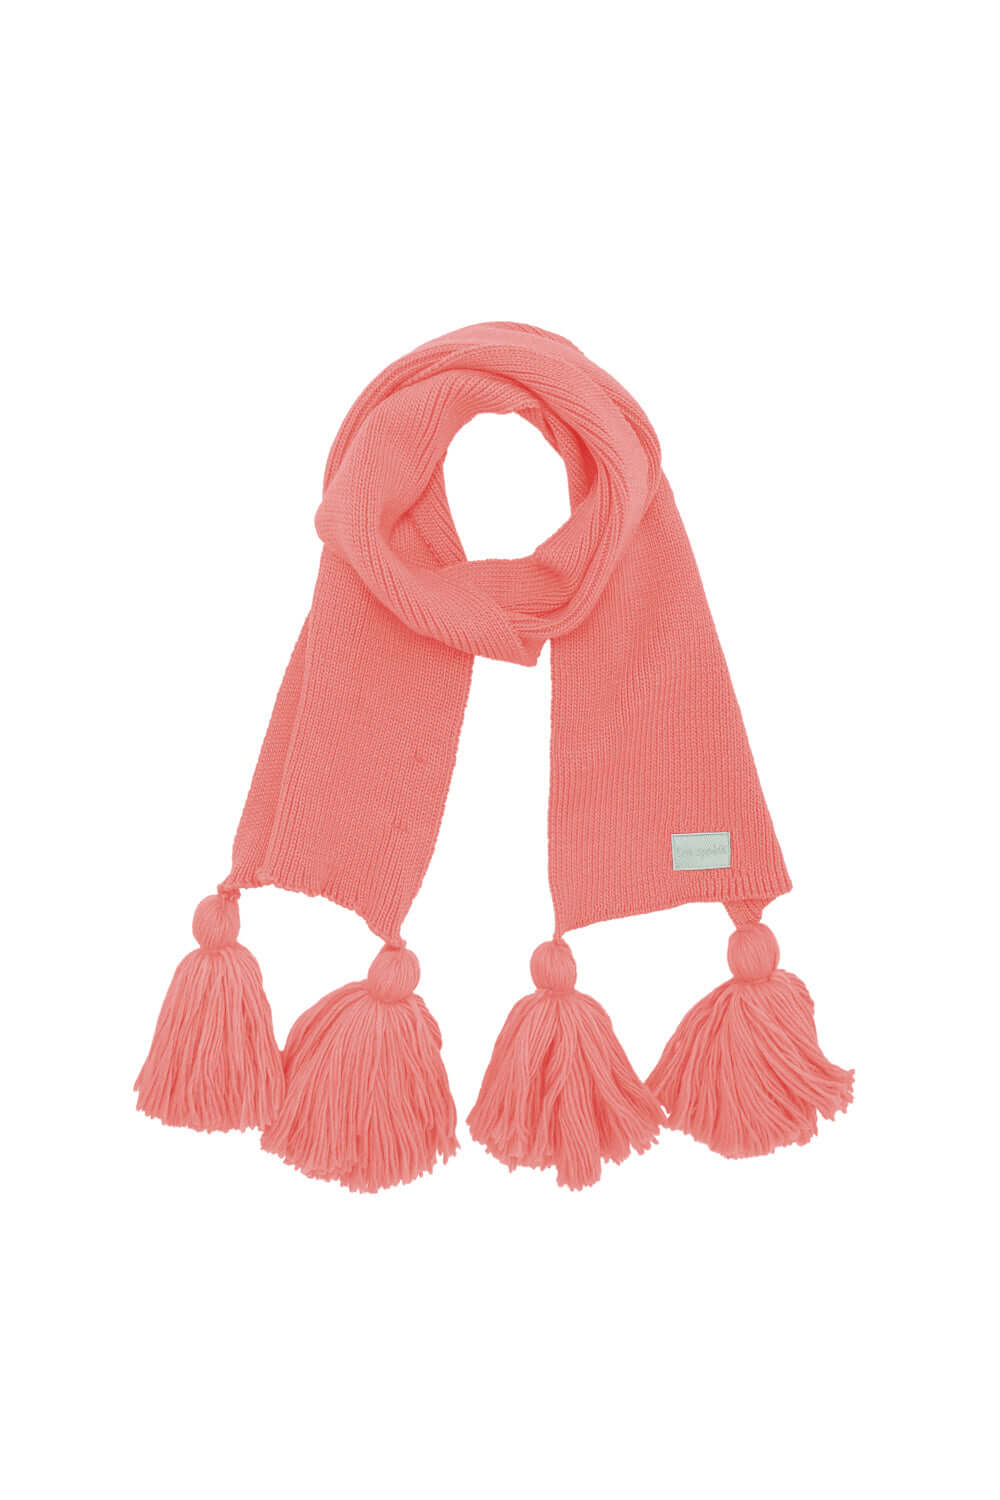 Ellis scarf in pink knit